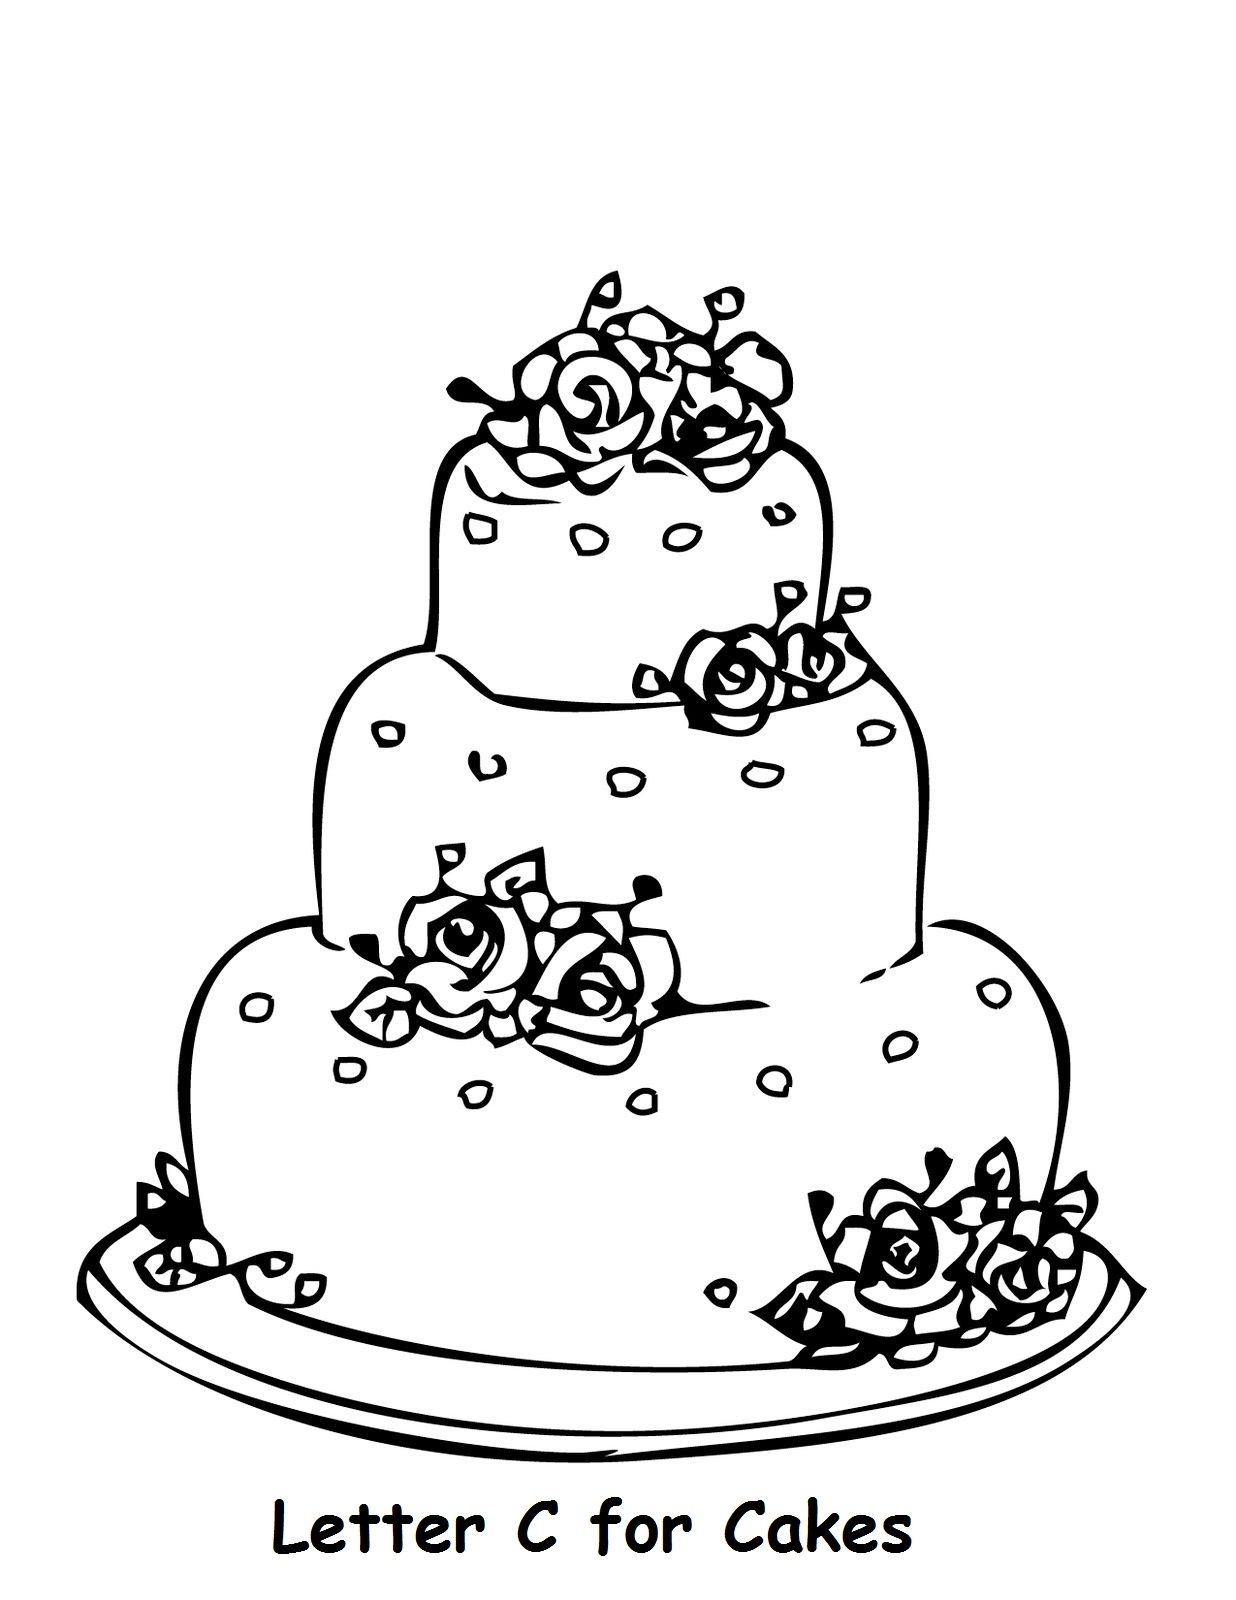 Letter C For Cake Colouring Page Wedding Coloring Pages Cake Drawing Wedding Cake Drawing